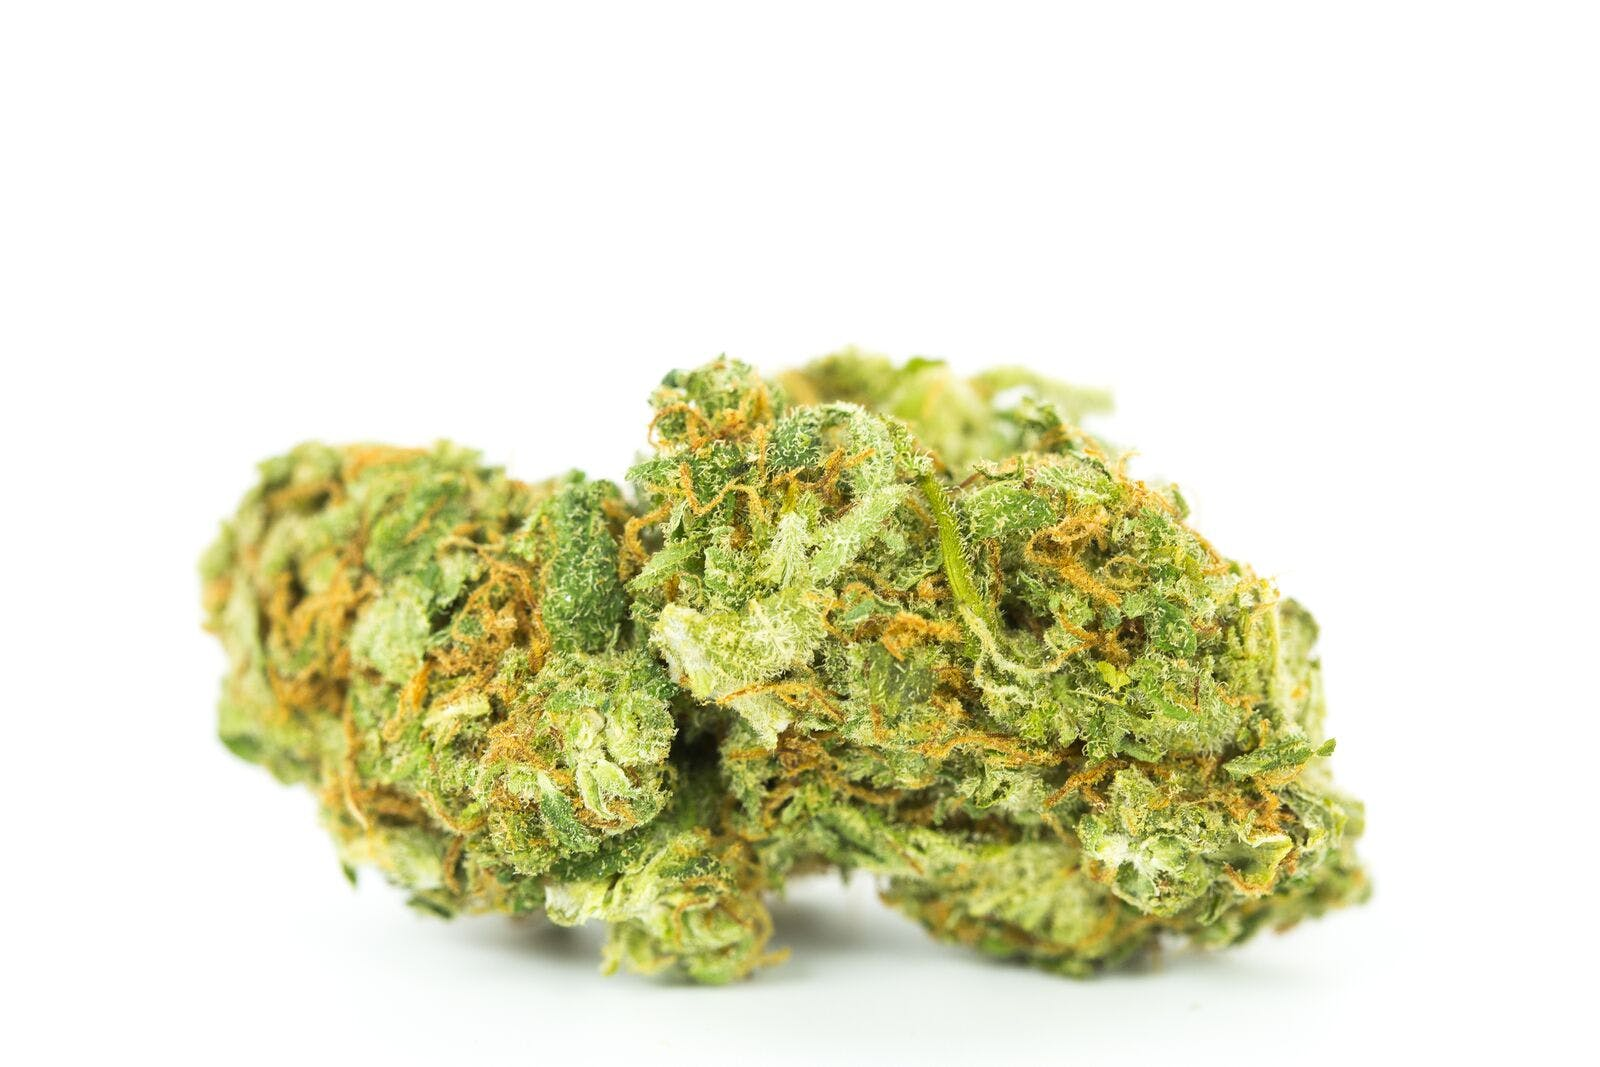 Afghani CBD Marijuana Strain Cannabis Cafes In Paris Are Trying To Claim The Bud They Sell Isnt For Smoking